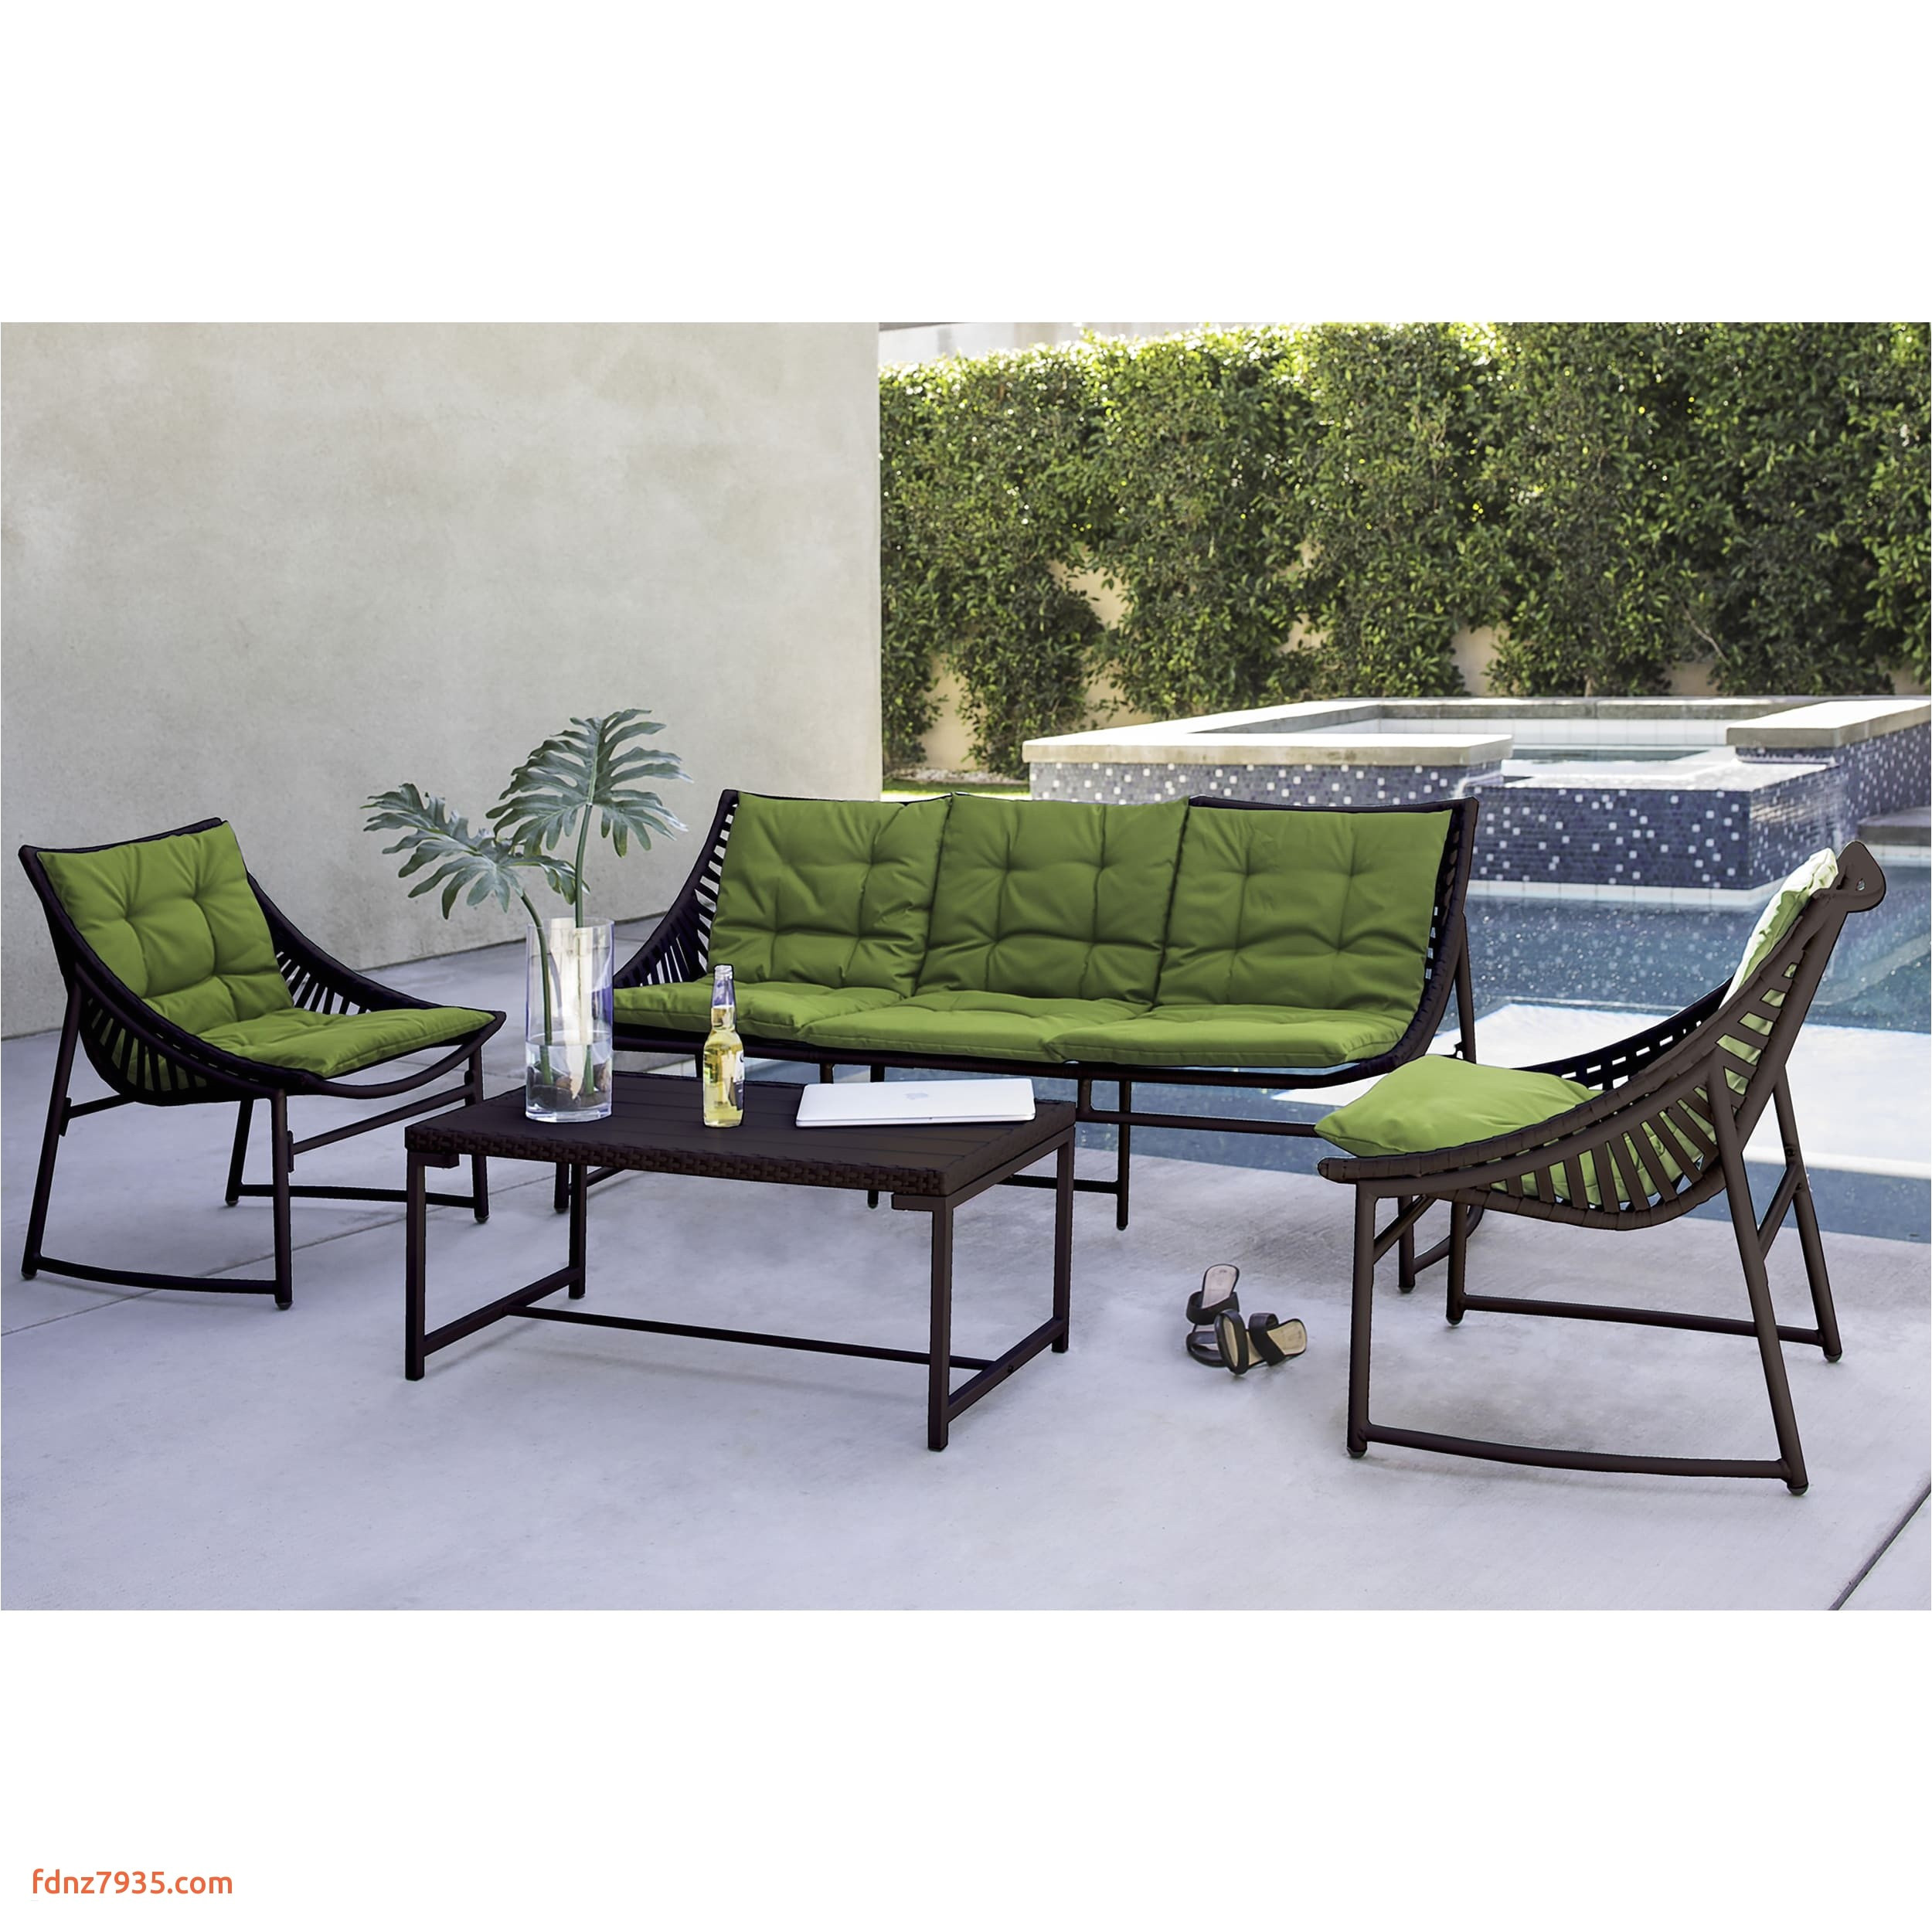 replacement patio chair slings elegant patio furniture cushions sunbrella luxury wicker outdoor sofa 0d